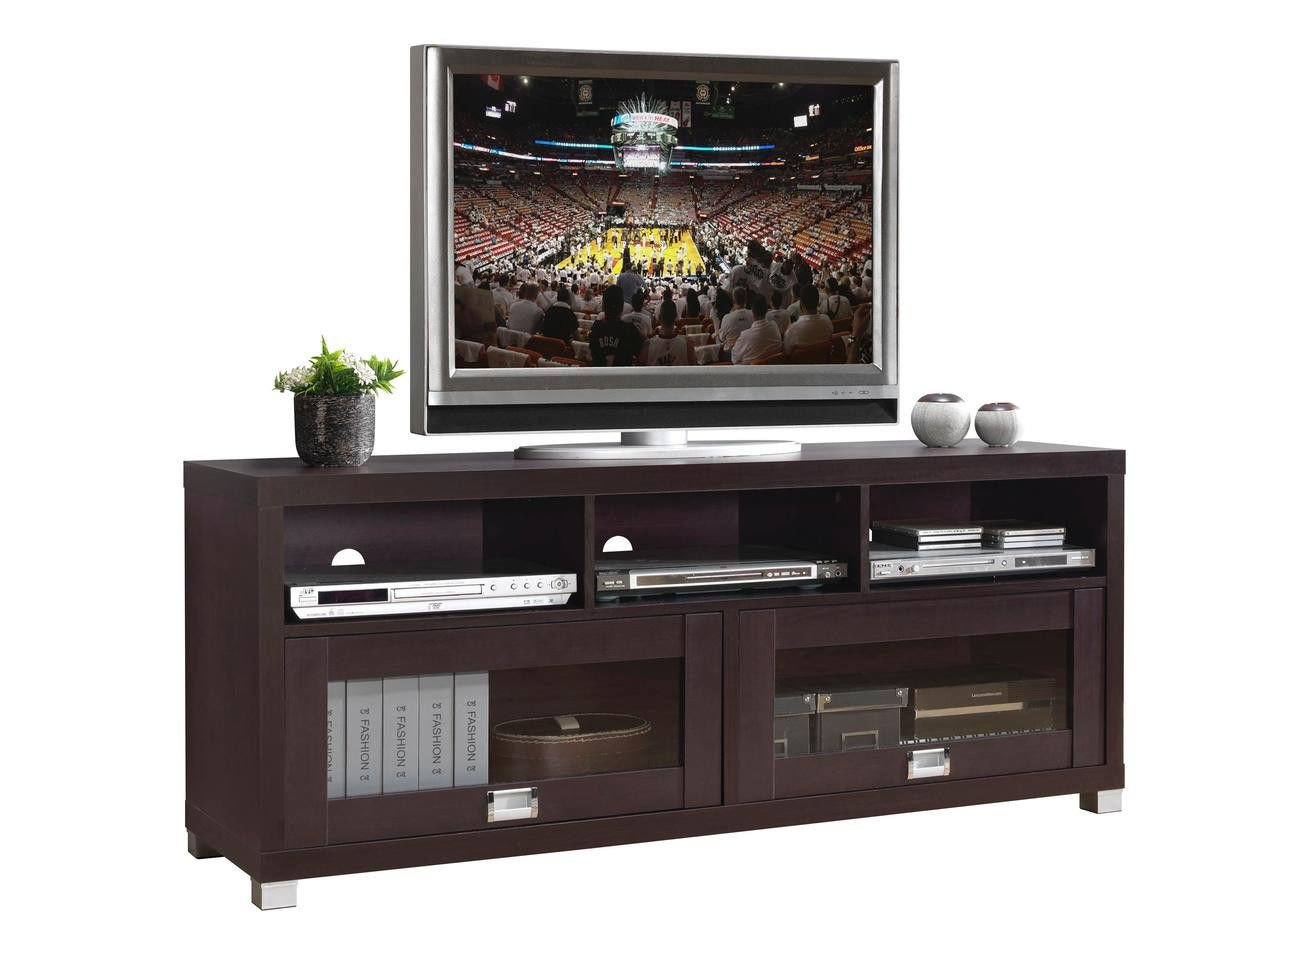 Foto Mobili Tv.Techni Mobili Durbin Tv Cabinet For Tvs Up To 65 Espresso